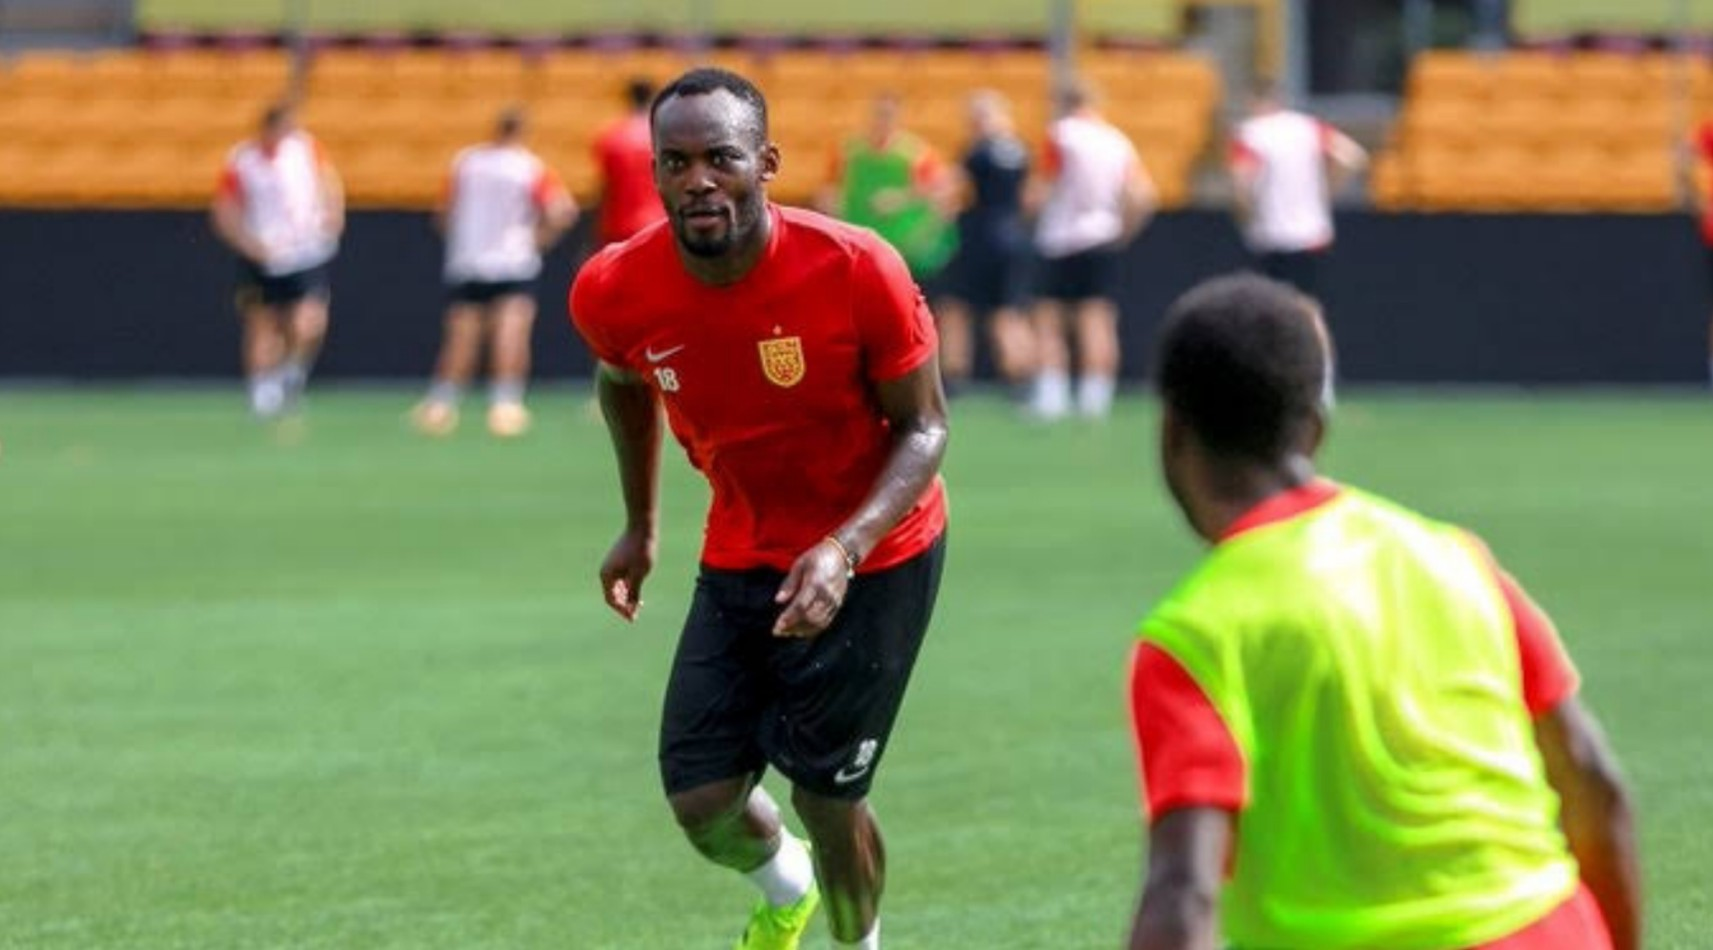 Michael Essien takes coaching role at European Club